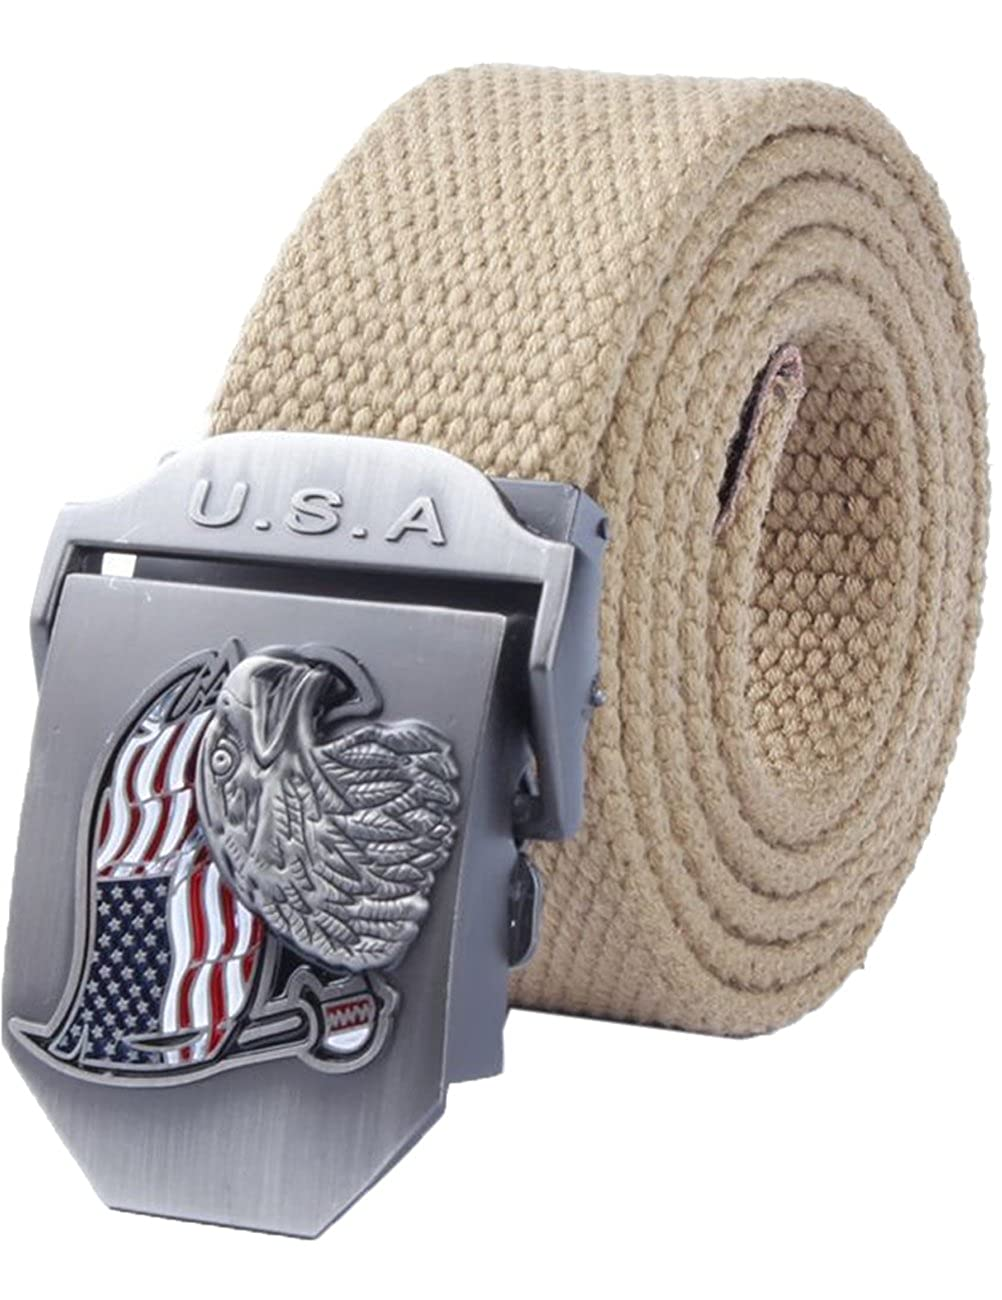 Mens Adjustable Canvas Belt Stainless Steel Buckle Military Waistband 47